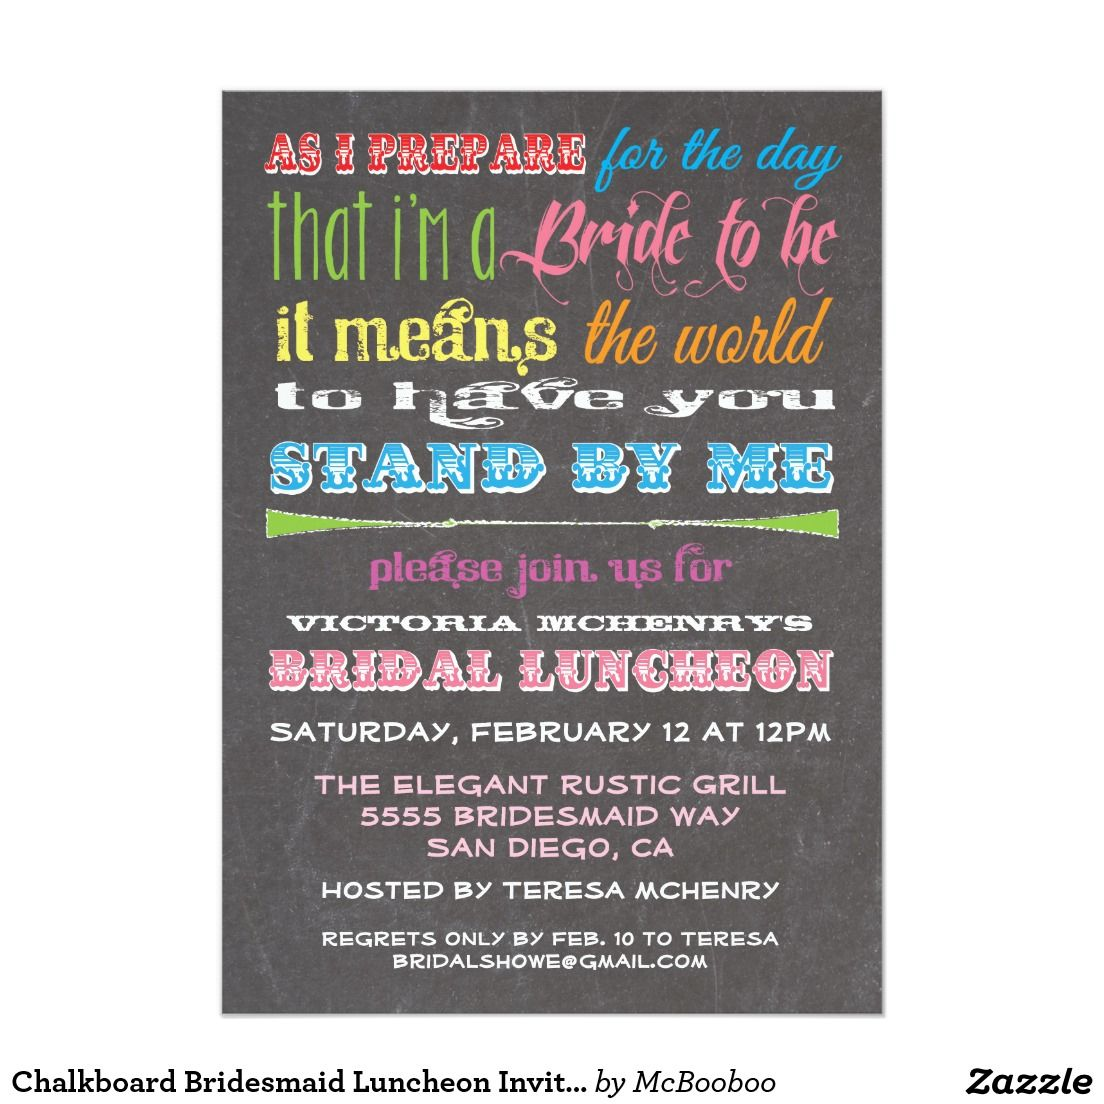 Chalkboard Bridesmaid Luncheon Invitations. Elegant Chalkboard Bridal Shower Invitation Templates. Classy bridal shower invitations that you can order online. Customized for the new bride to be. Elegant bridal shower invitation that feature a nice chalkboard background, great design and typography. Click image to customize. Feel free to like or repin.